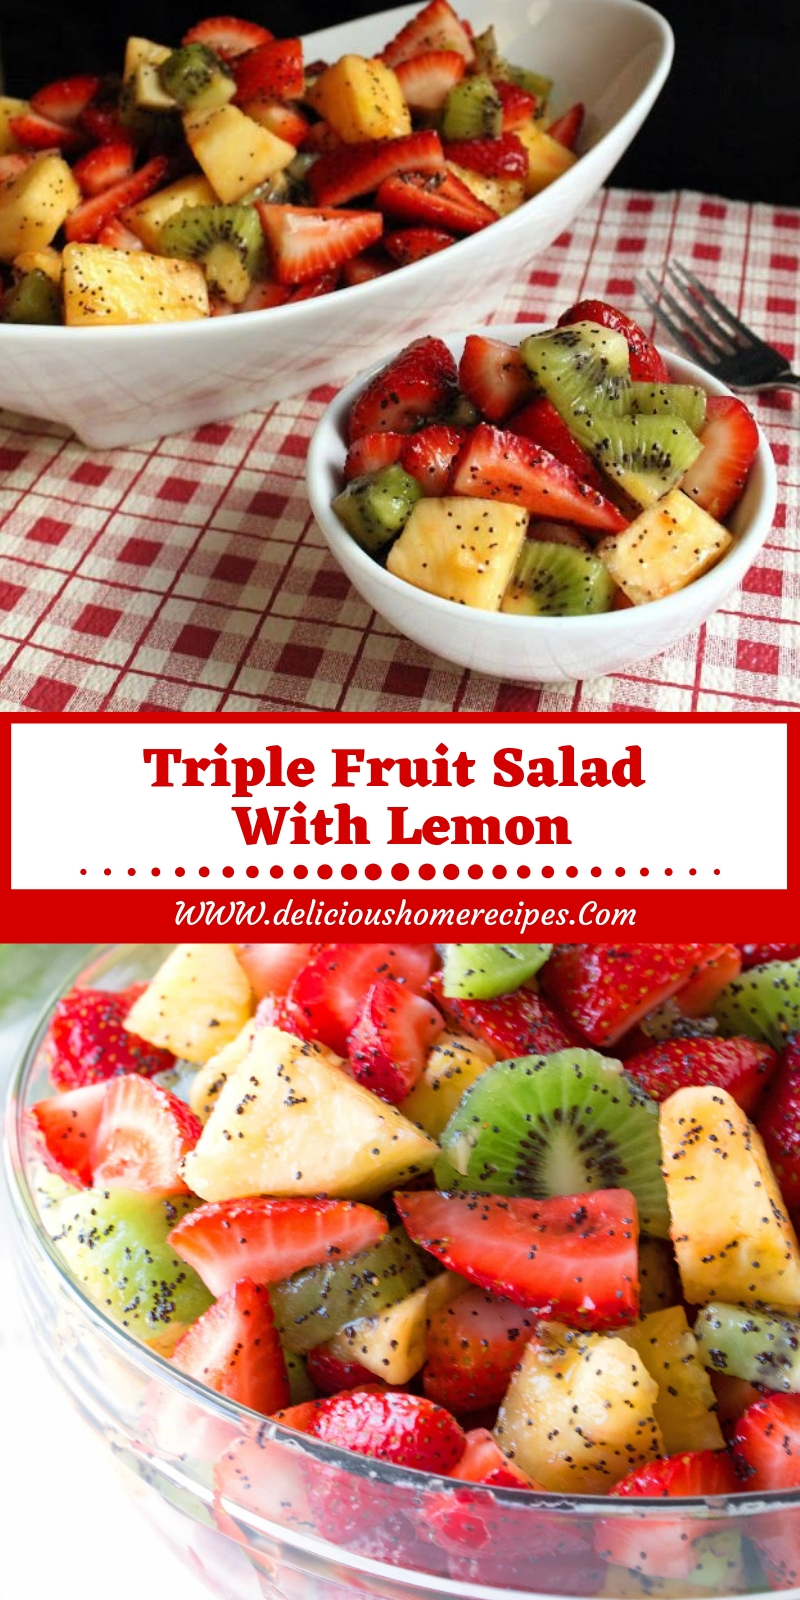 Triple Fruit Salad With Lemon